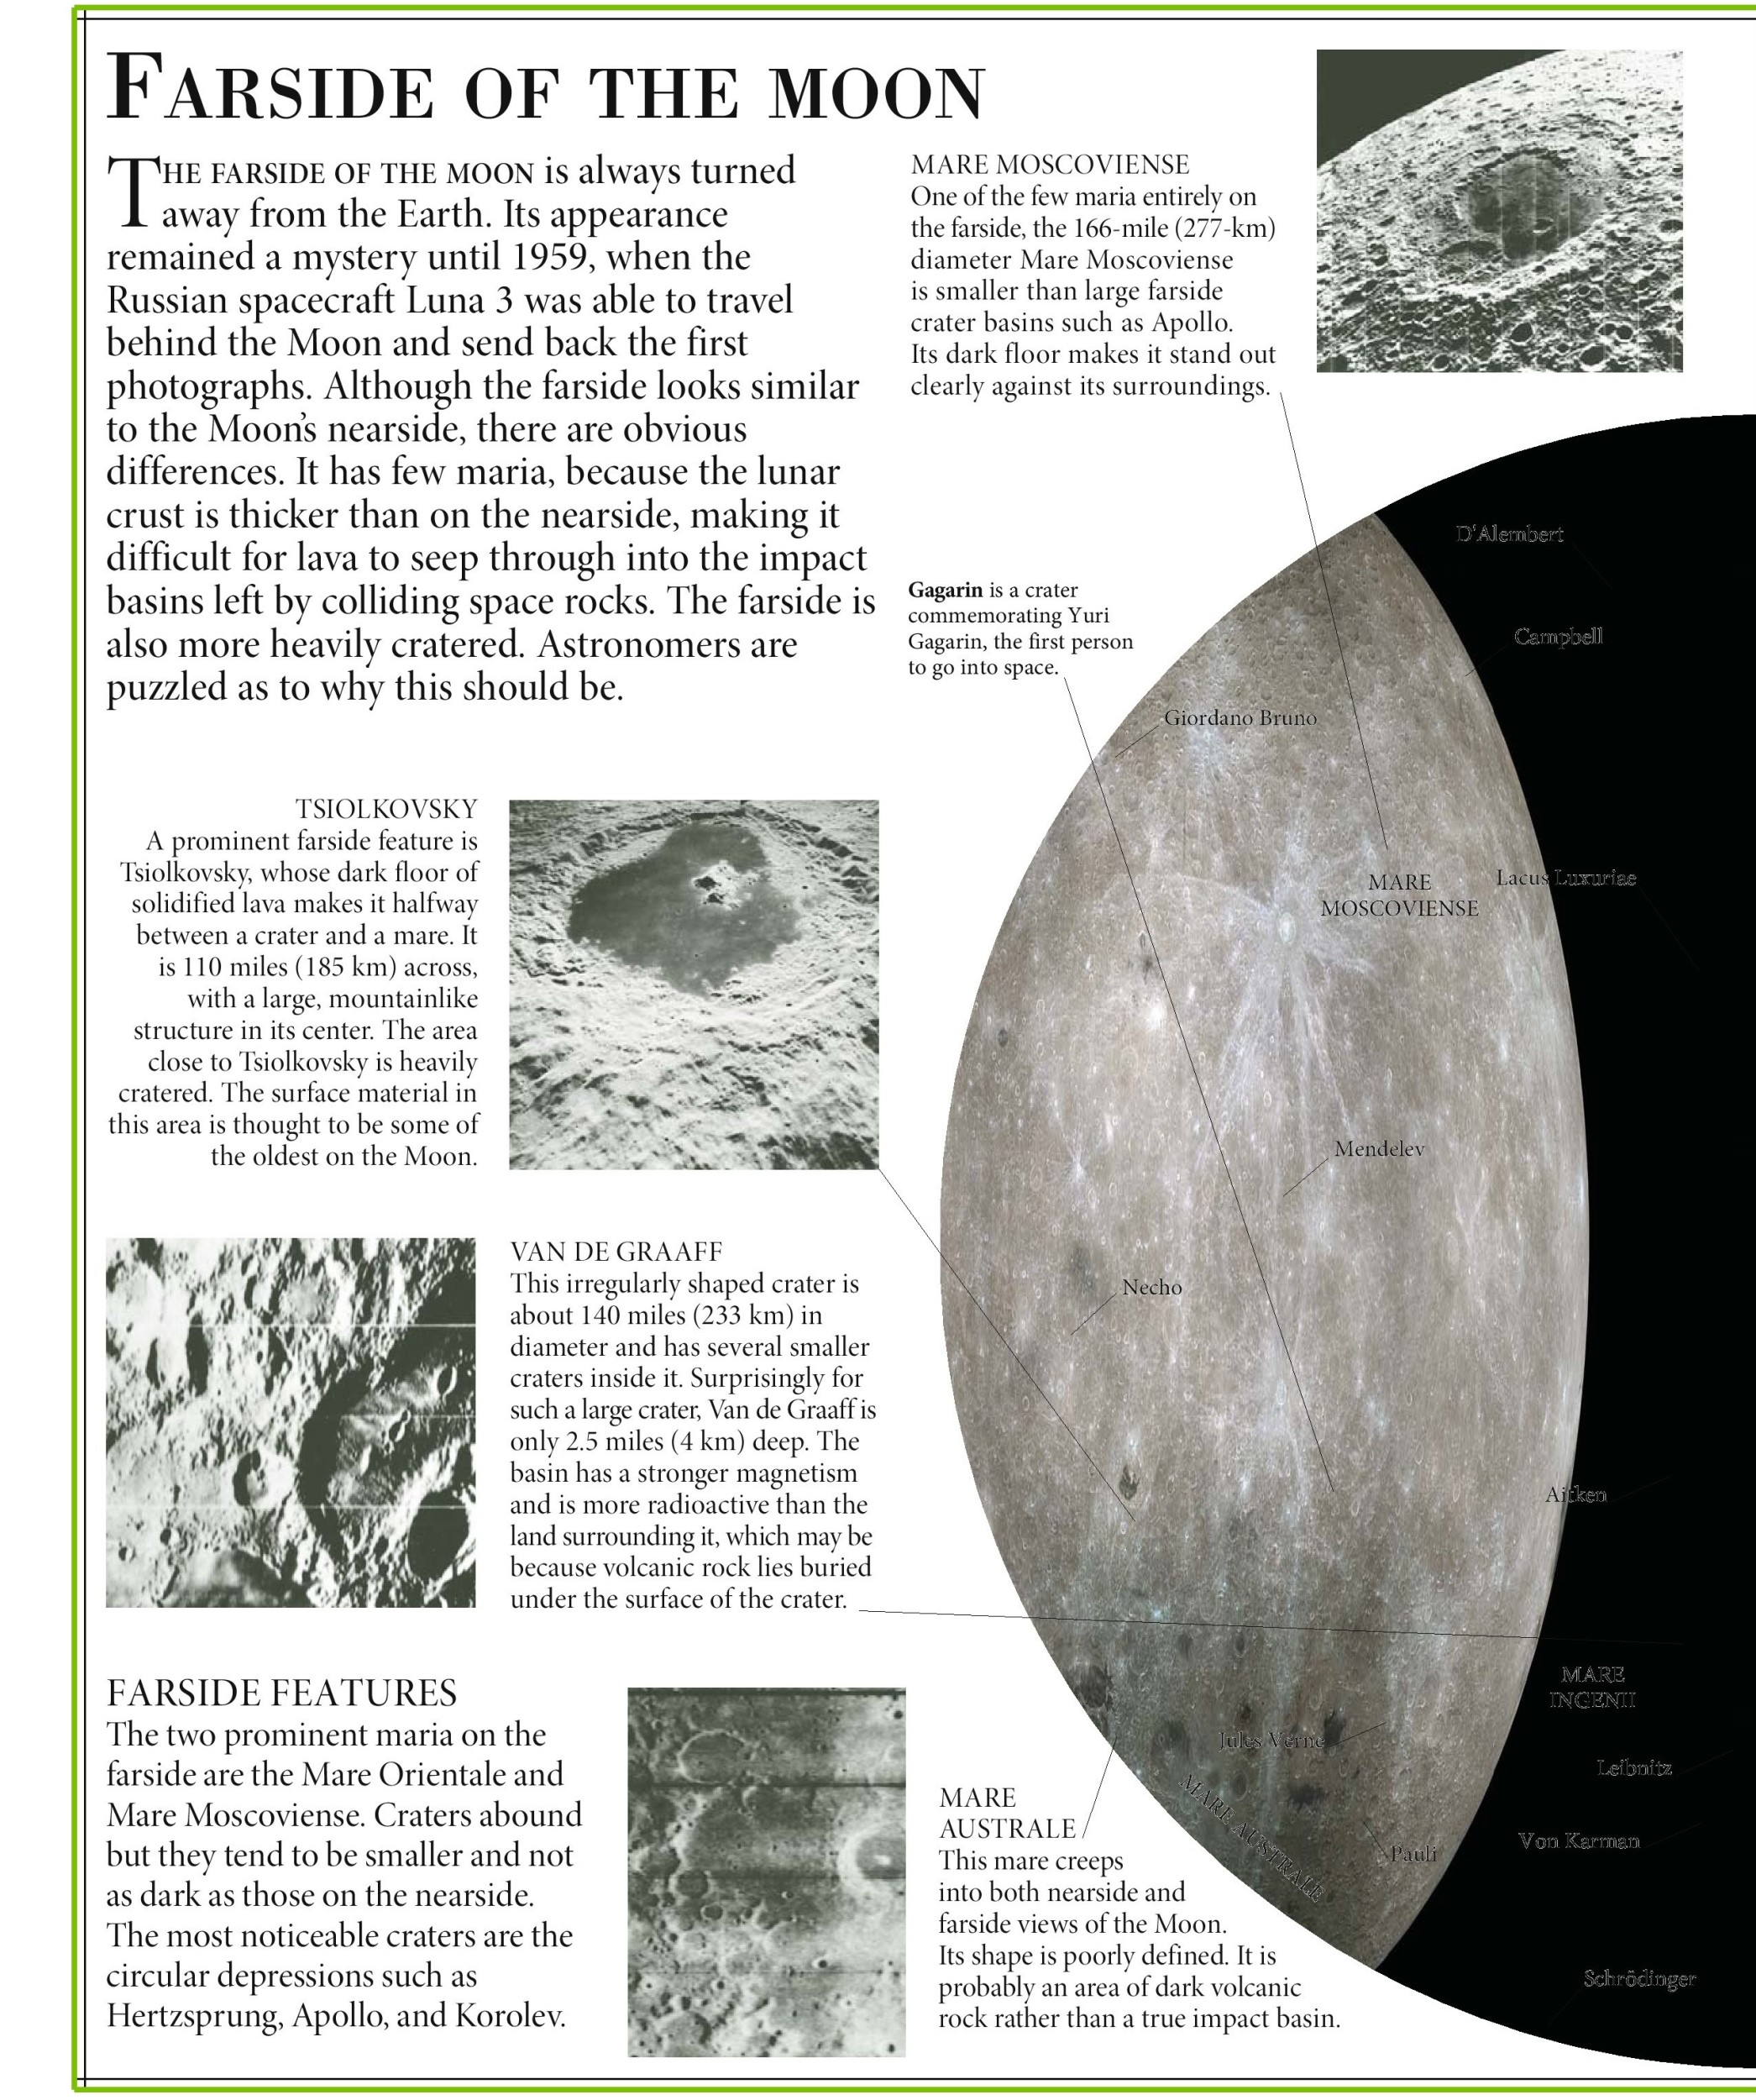 The farside of the moon is always turned away from the Earth. Its appearance remained a mystery until 1959, when the Russian spacecraft Luna 3 was able to travel behind […]